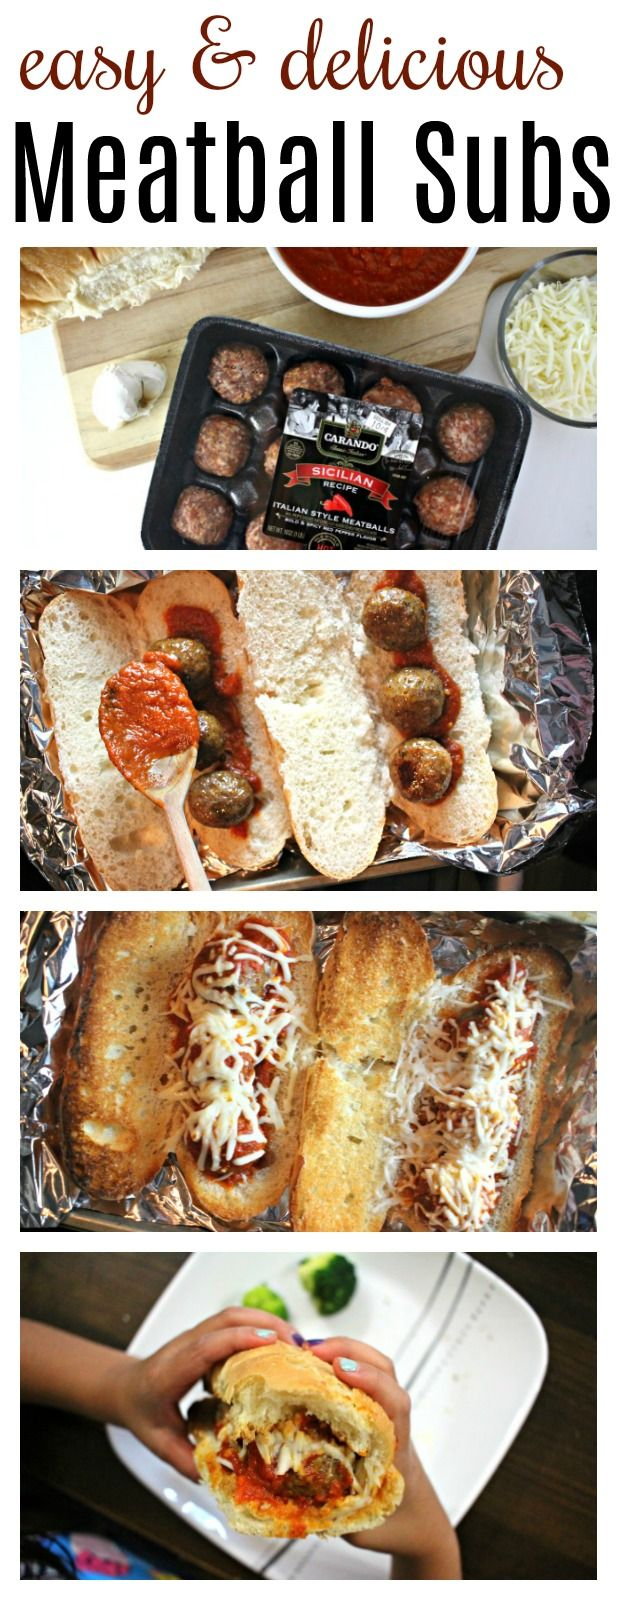 When it comes to feeding my family during the week, I look for meals that are easy, delicious, and come together fast. Meatballs subs are a family favorite for all three reasons! #AD #IC #carandoatfoodlion